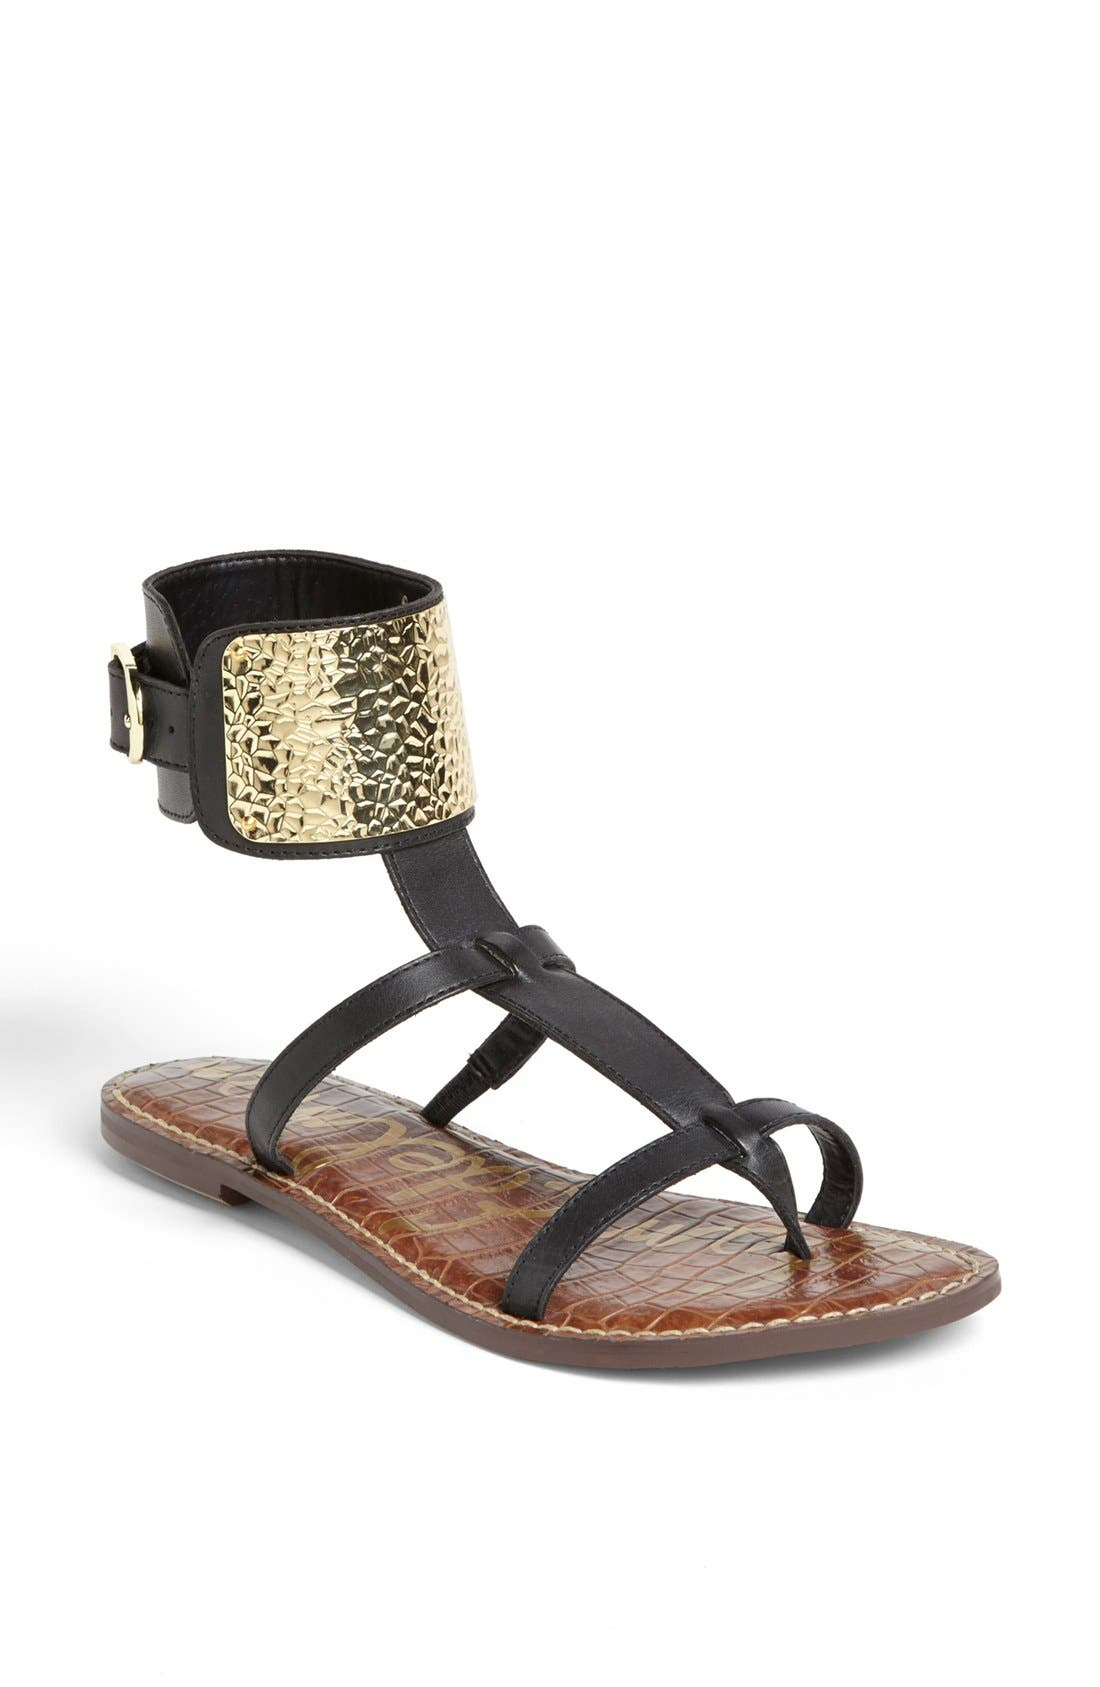 SAM EDELMAN, 'Genette' Sandal, Main thumbnail 1, color, 001